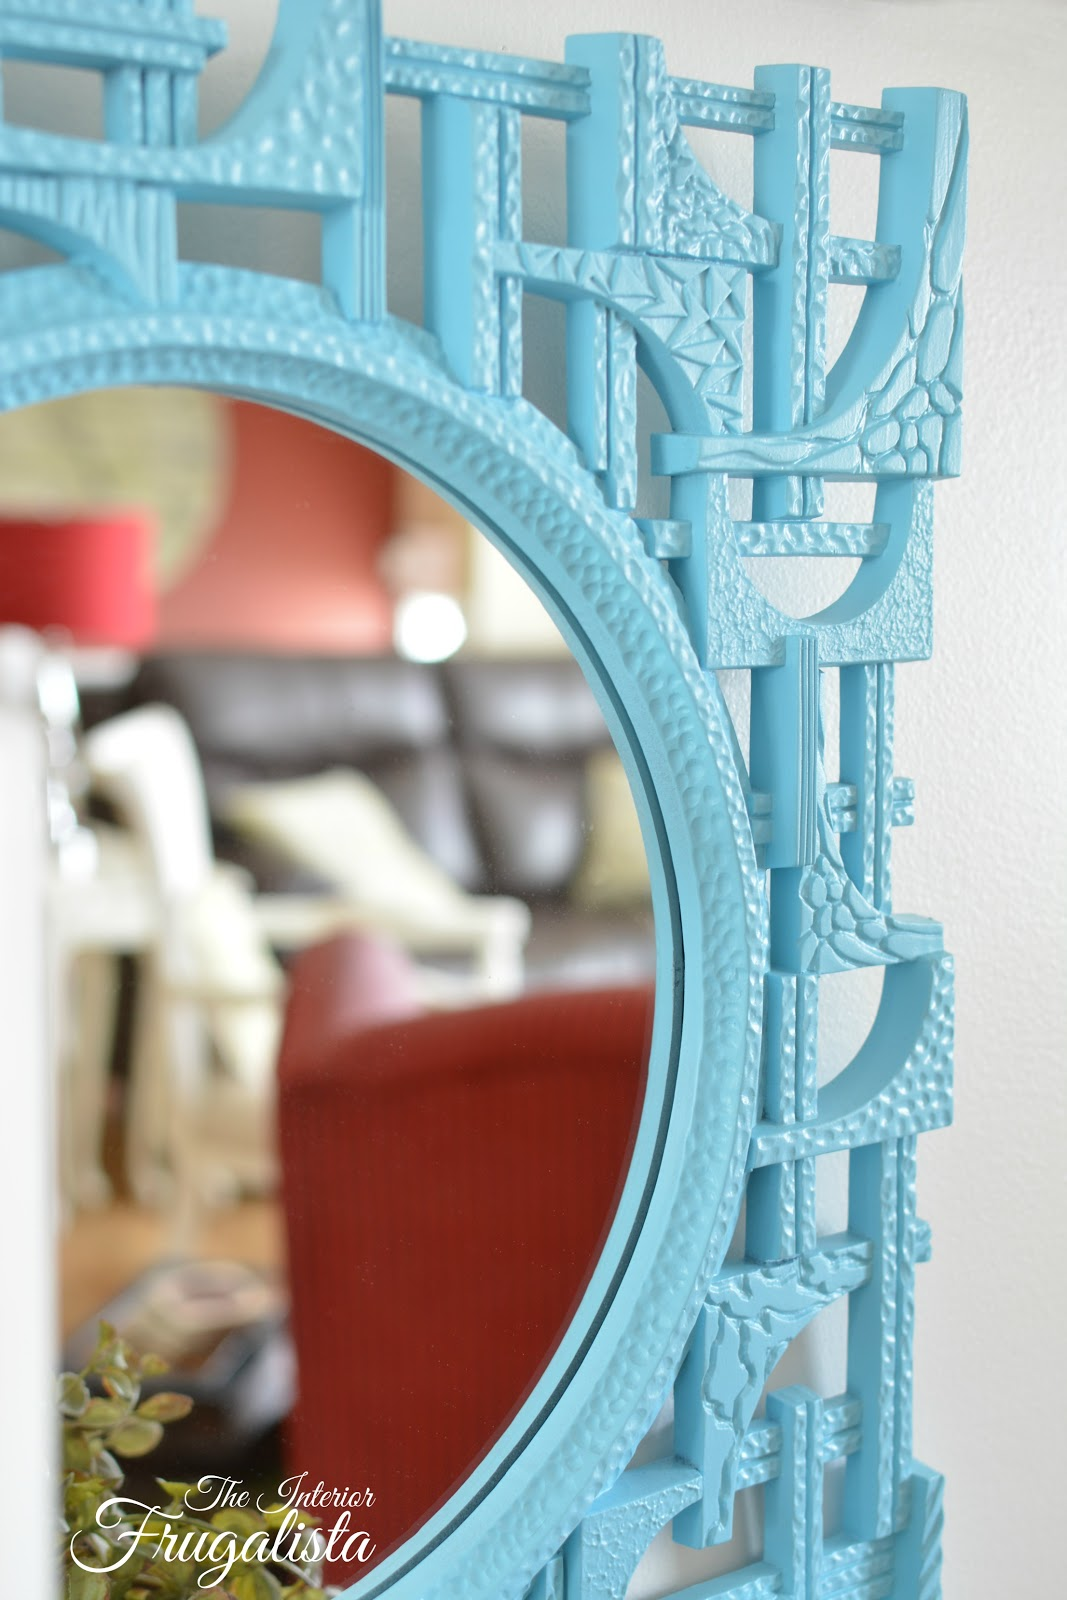 Aqua spray painted Vintage Coppercraft textured mirror